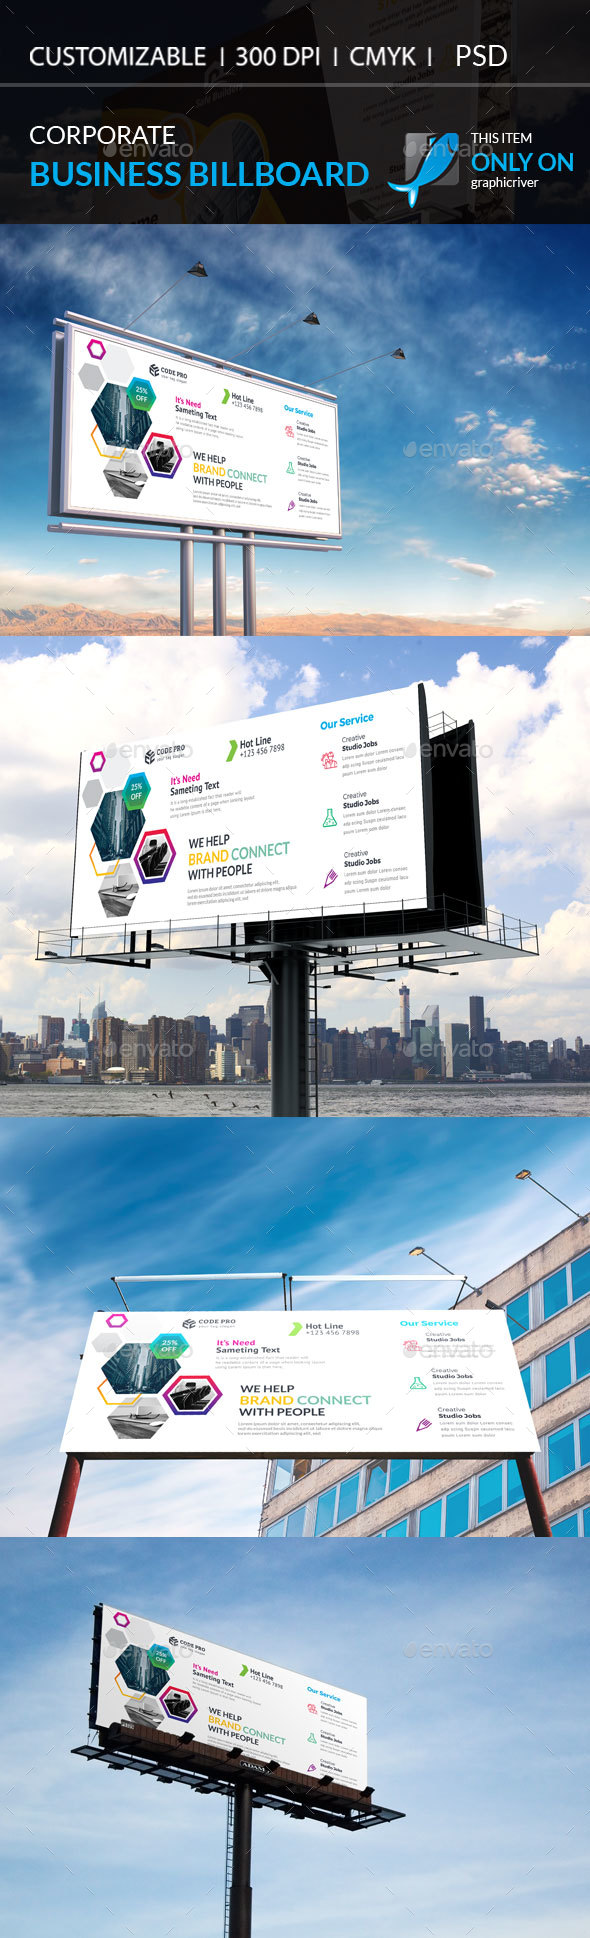 Corporate Billboard Template - Stationery Print Templates